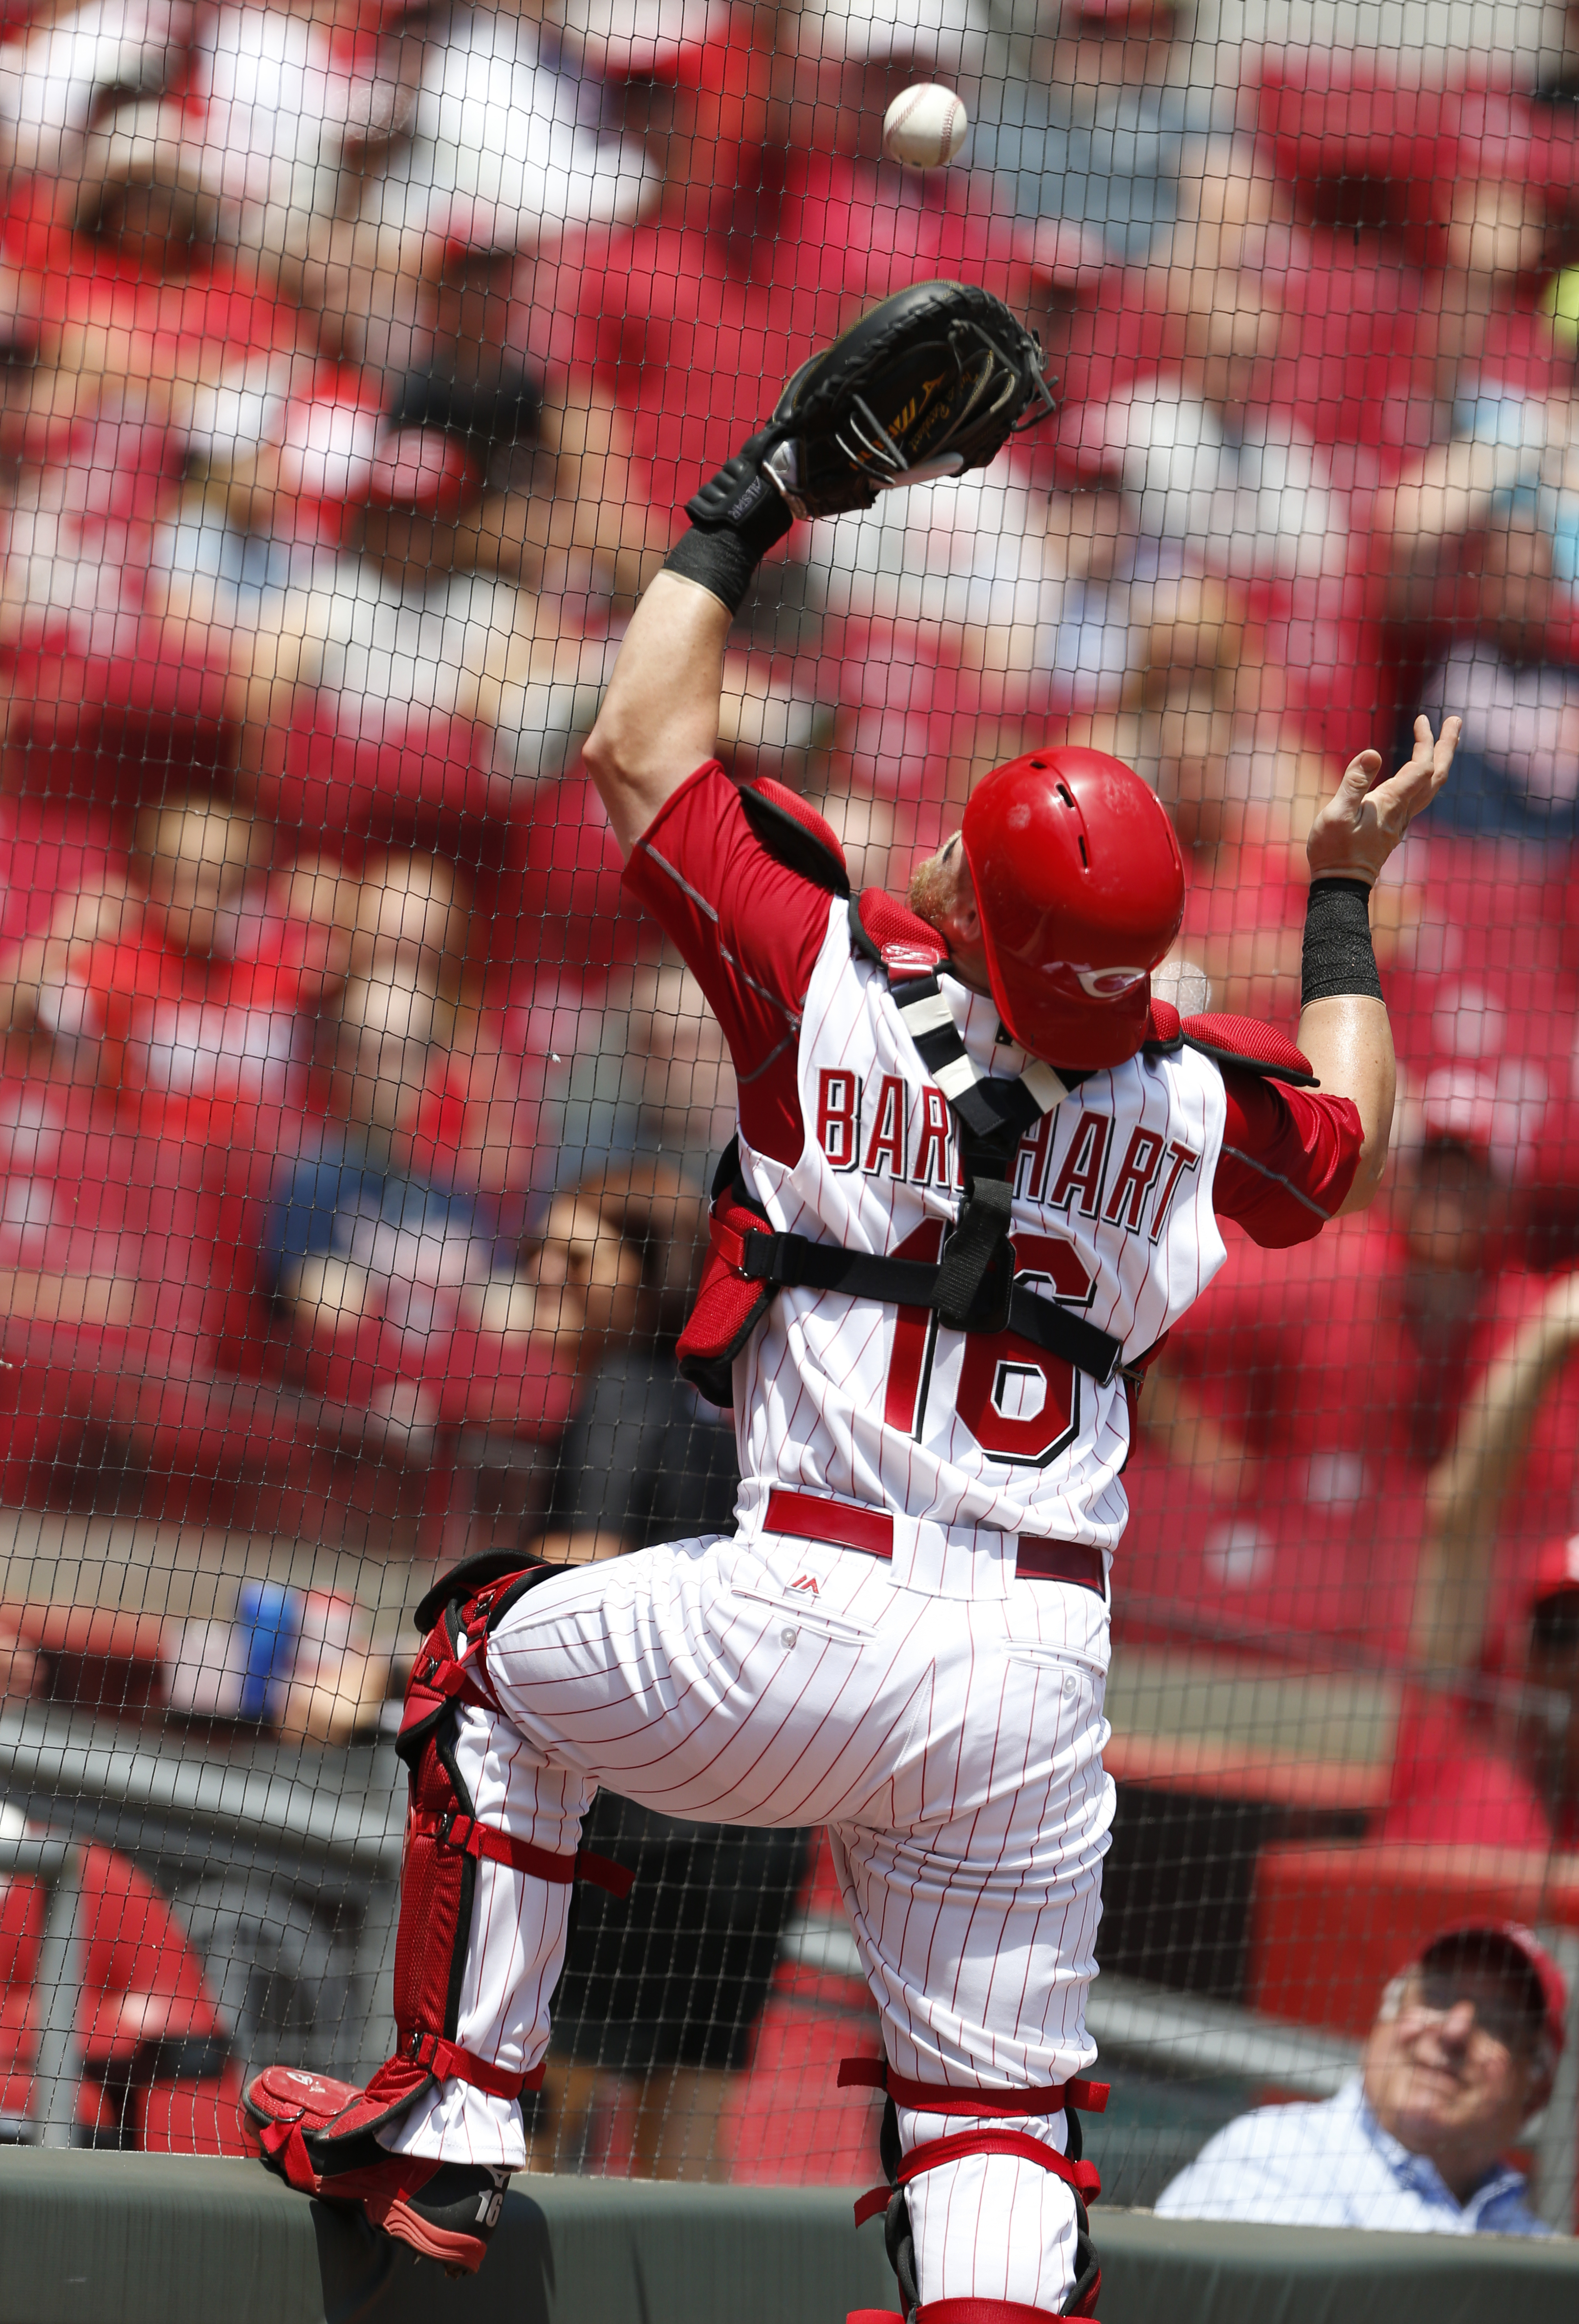 Cincinnati Reds catcher Tucker Barnhart climbs the fence behind home plate to catch a foul ball off the bat of Atlanta Braves' Ender Inciarte during the sixth inning of a baseball game, Wednesday, July 20, 2016, in Cincinnati. (AP Photo/Gary Landers)